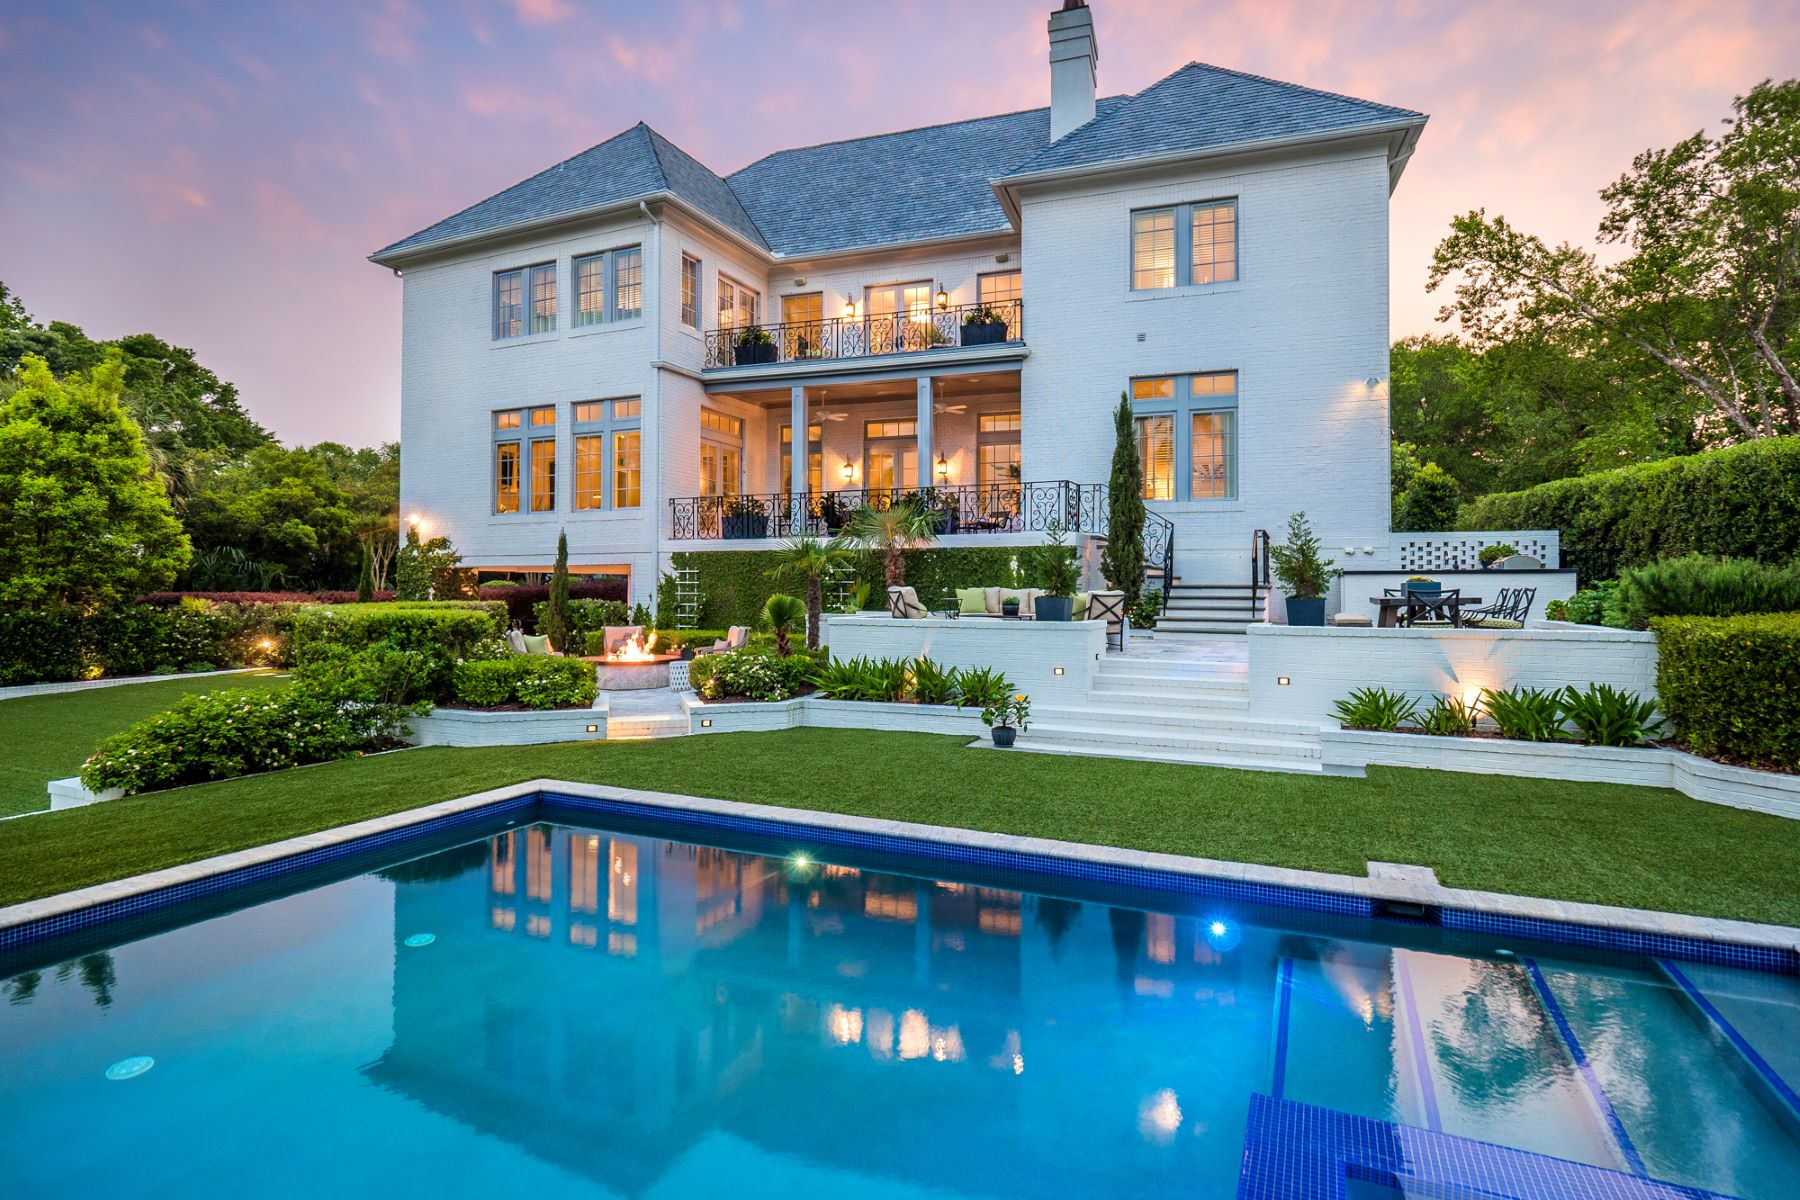 Single Family Home for Sale at Luxury Waterfront Home in Private Gated Community 813 Howes Point Place Wilmington, North Carolina 28405 United States